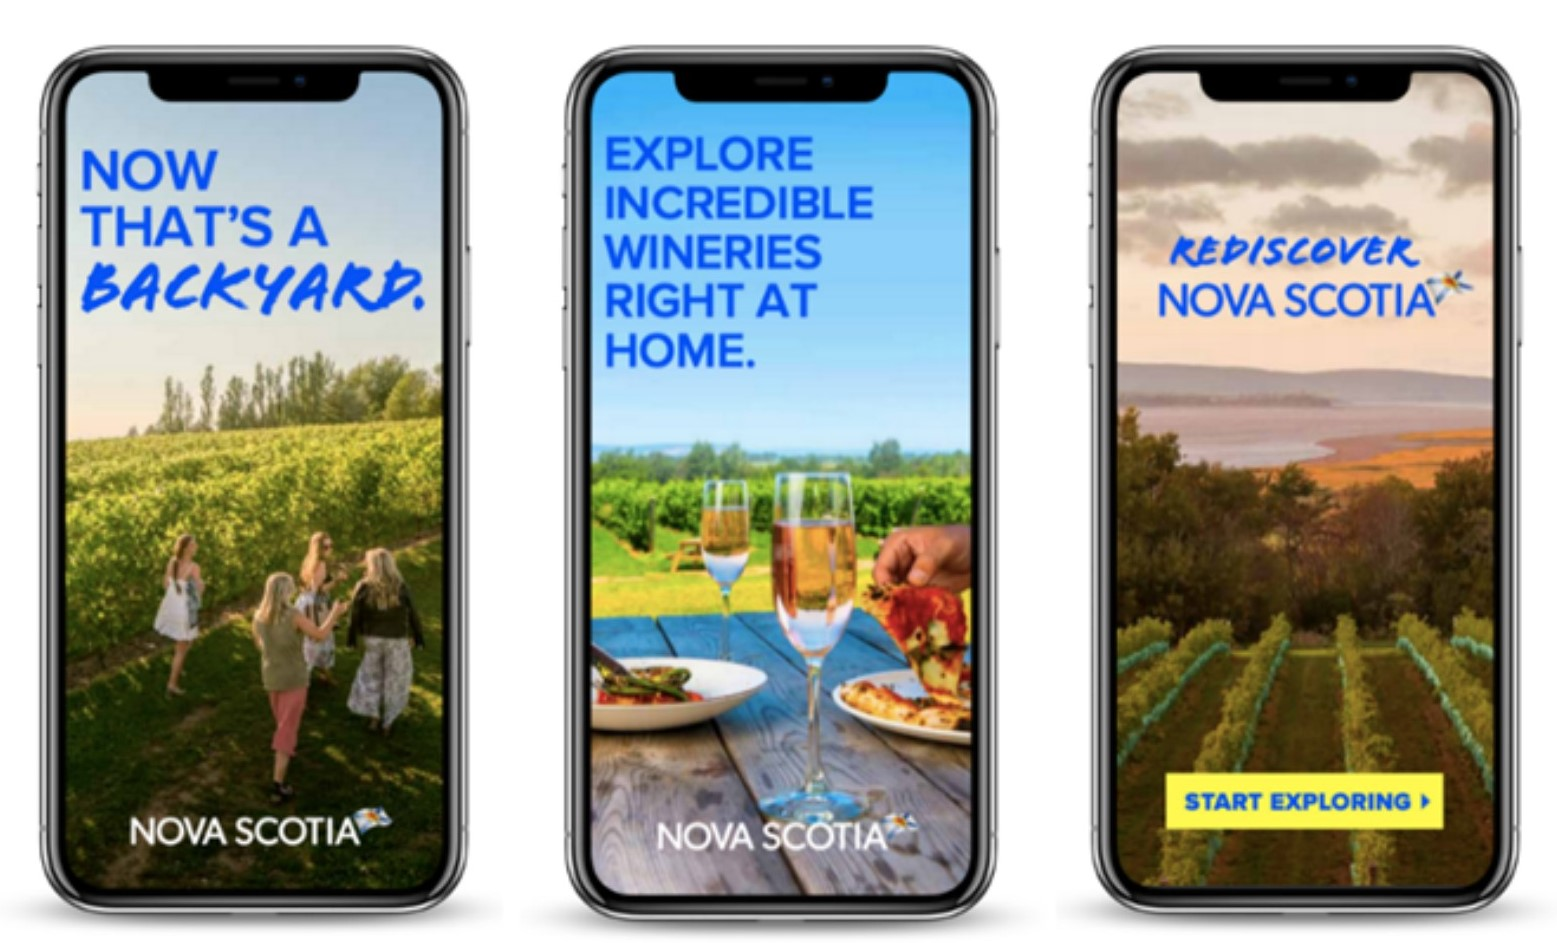 Three Tourism Nova Scotia ads featuring wineries and lobster shown on mobile phones.